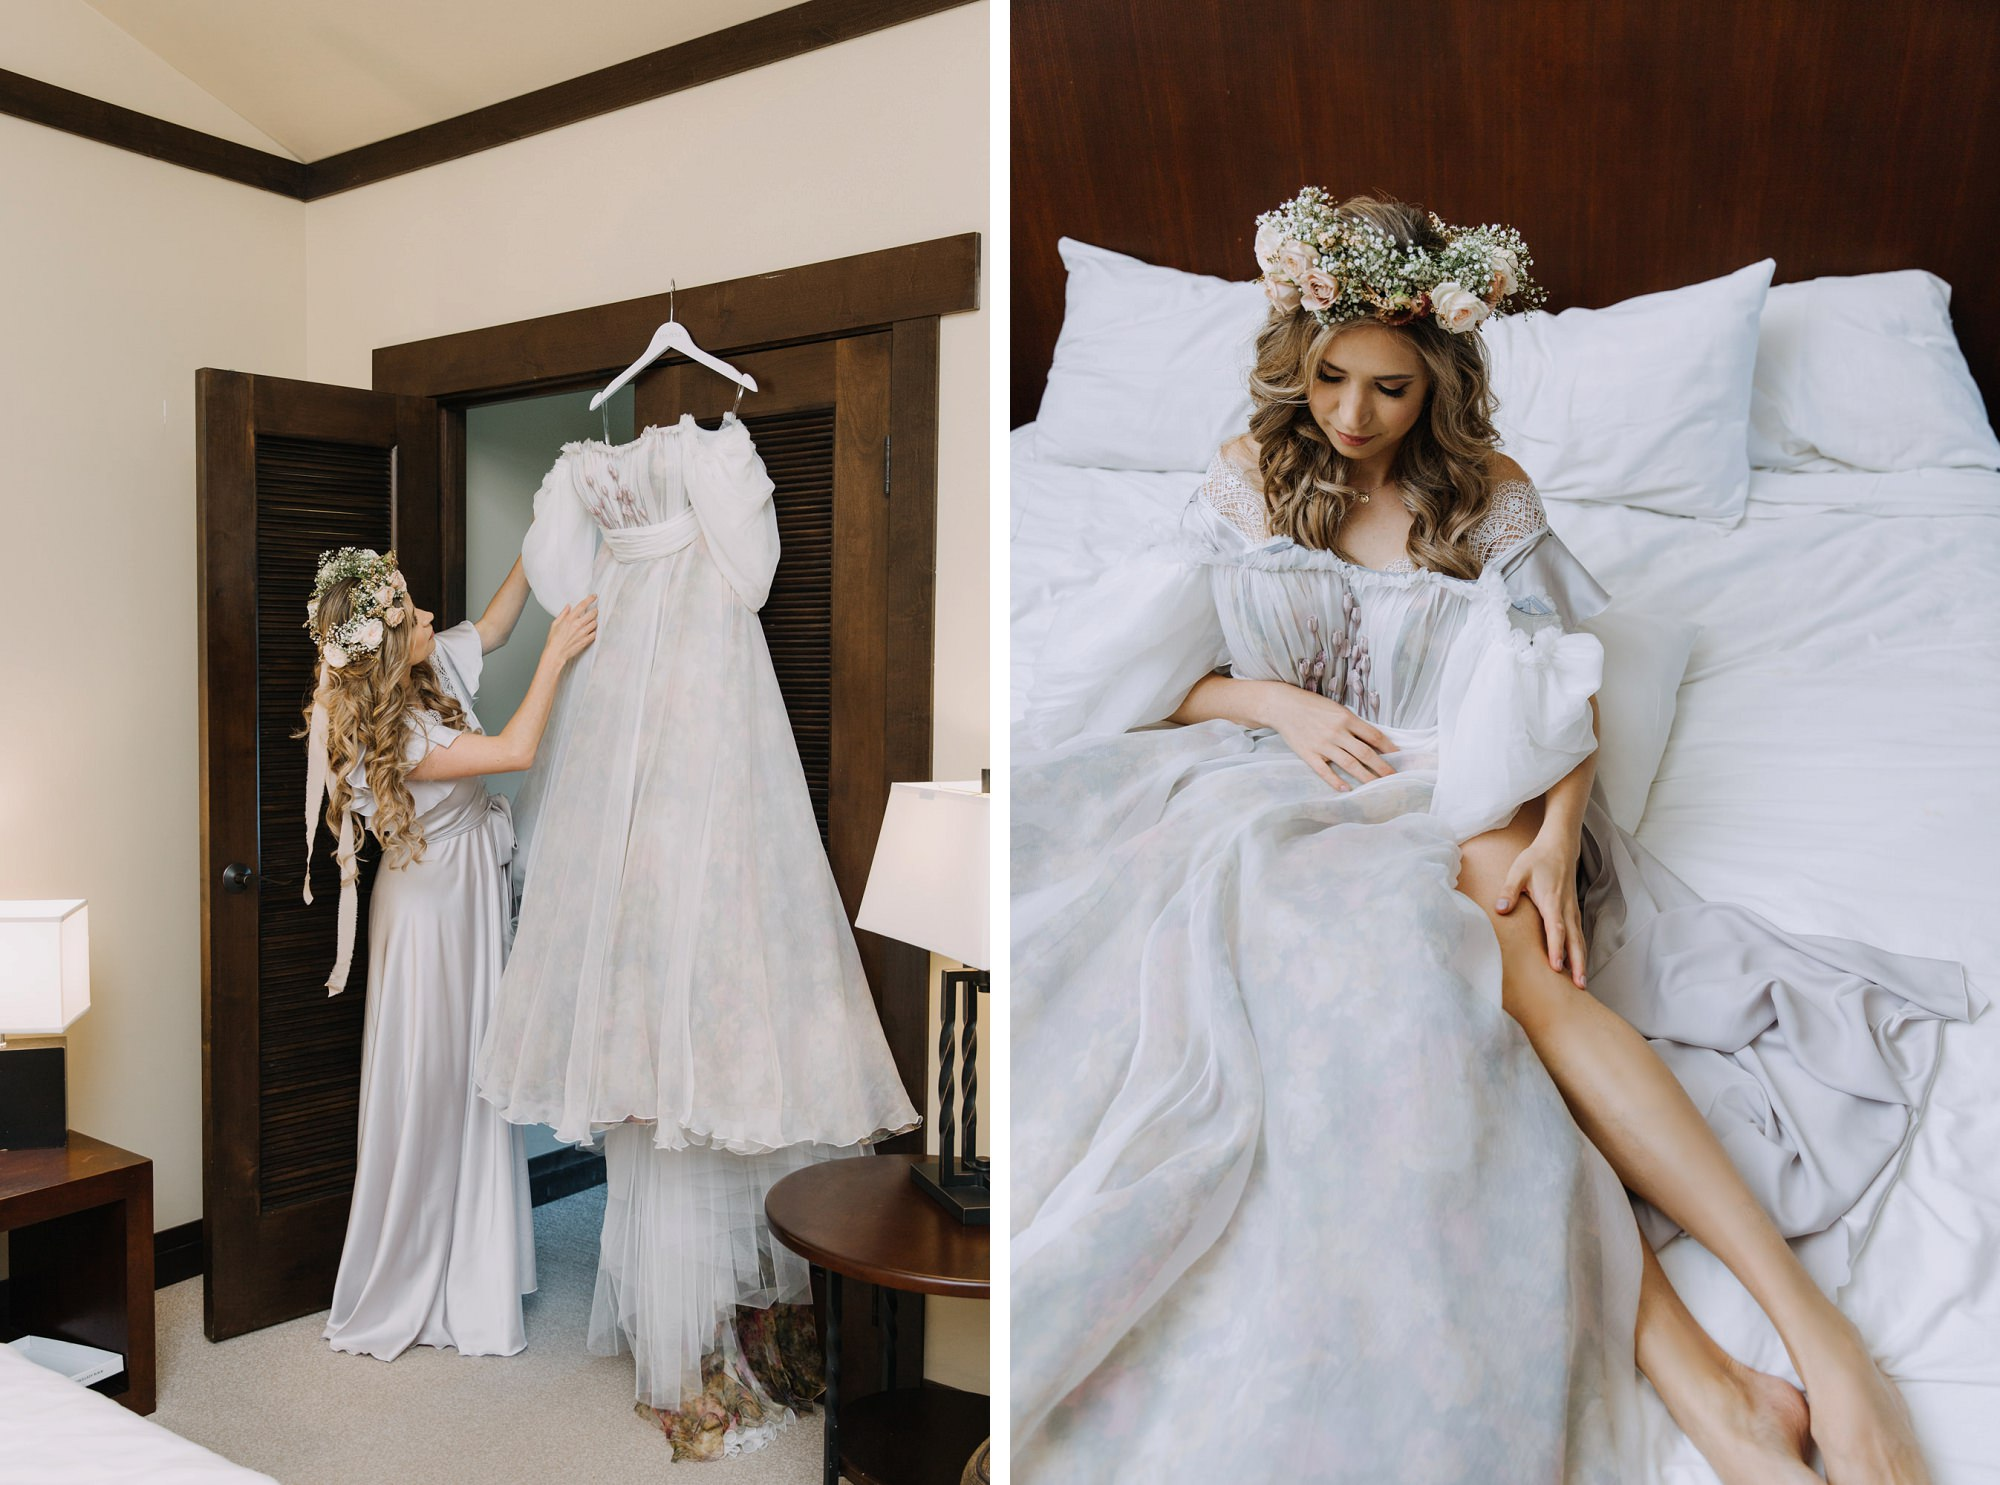 Bride playing with her wedding dress